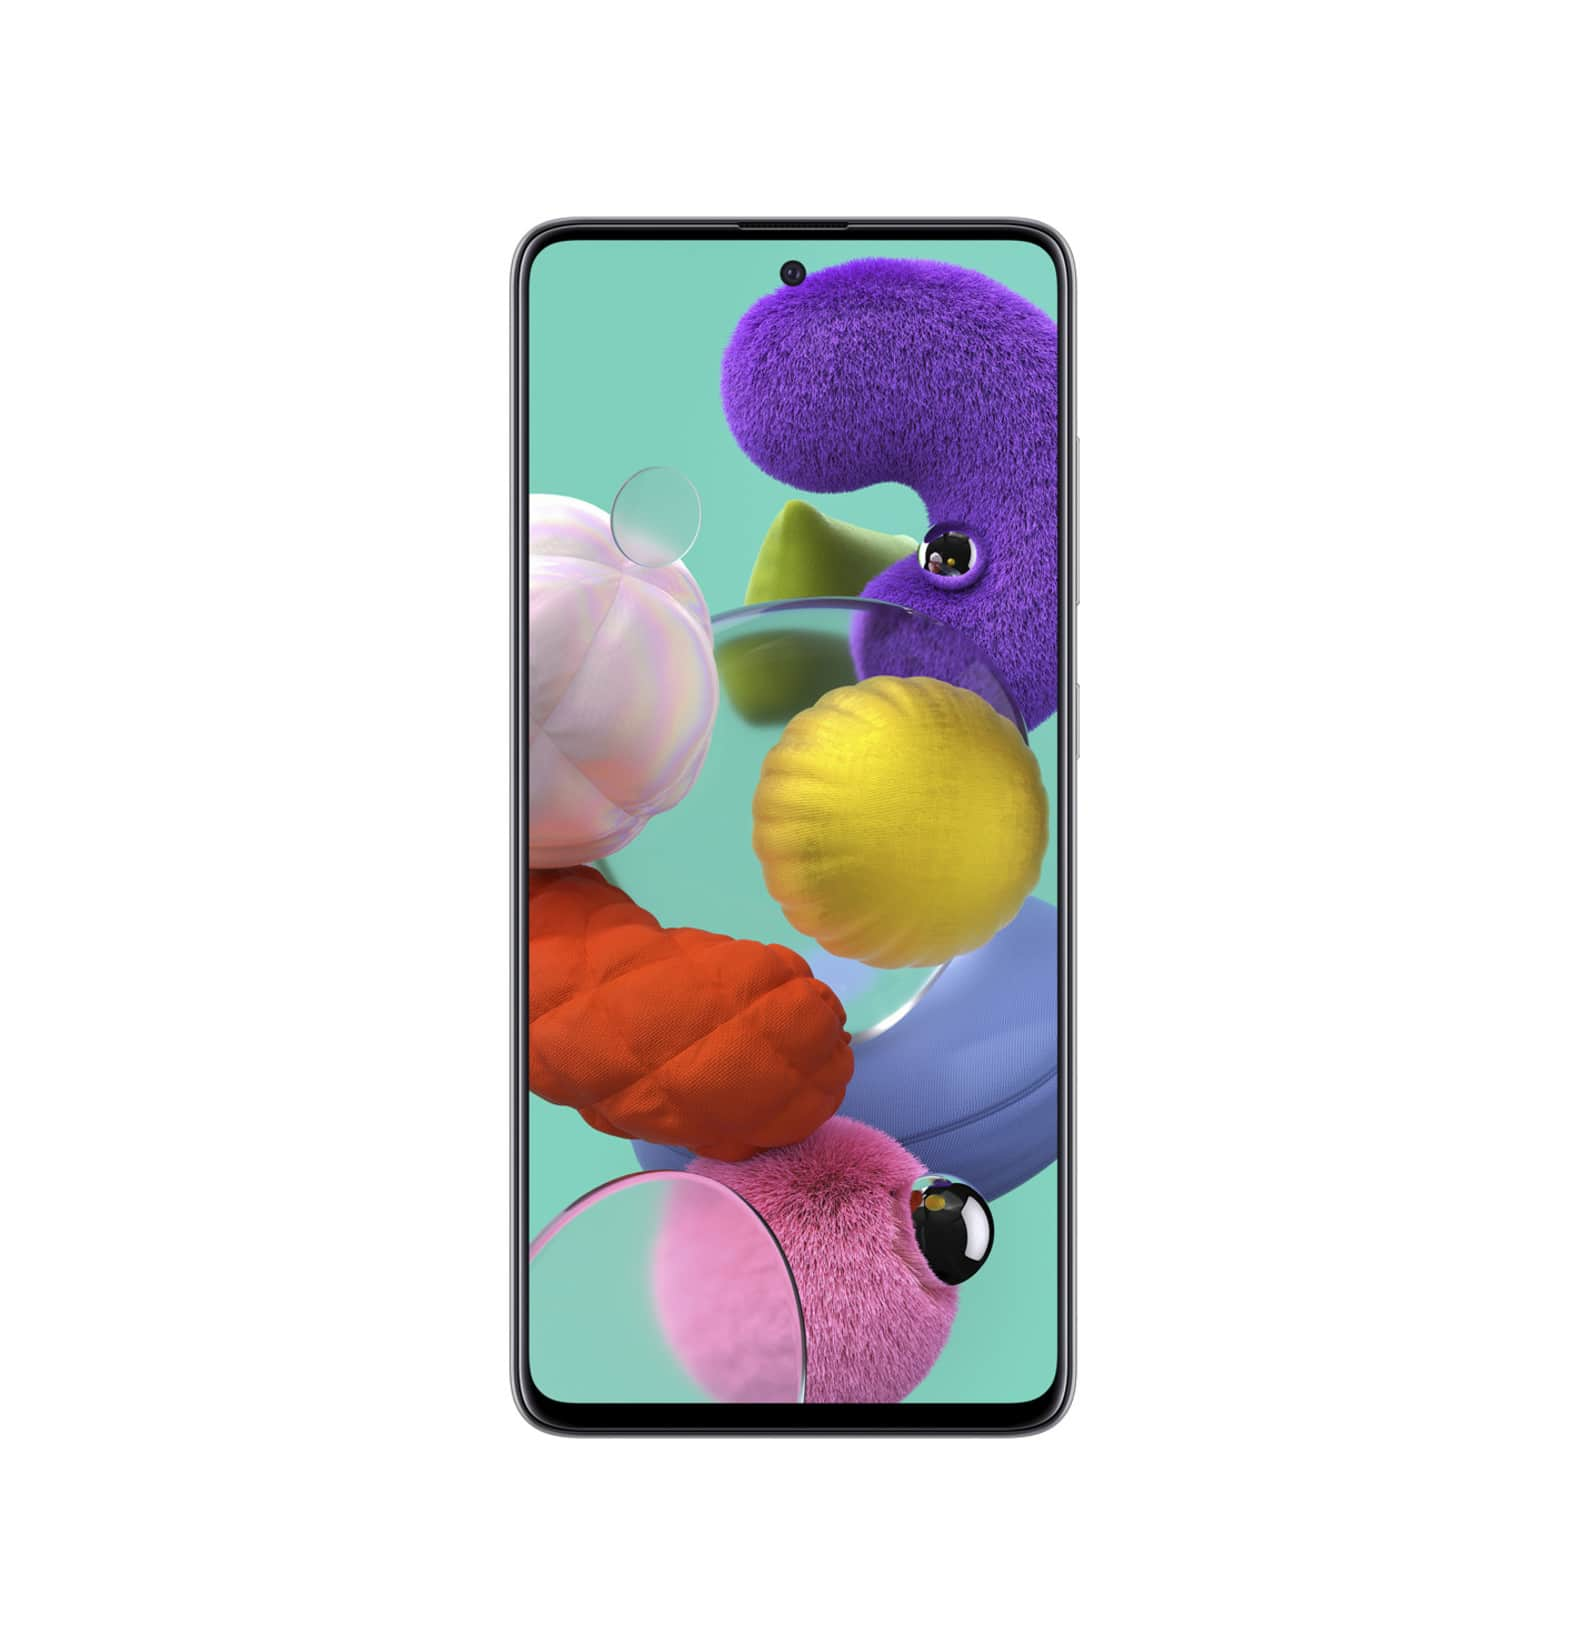 Unlocked Samsung Galaxy A51 128GB Android Phone